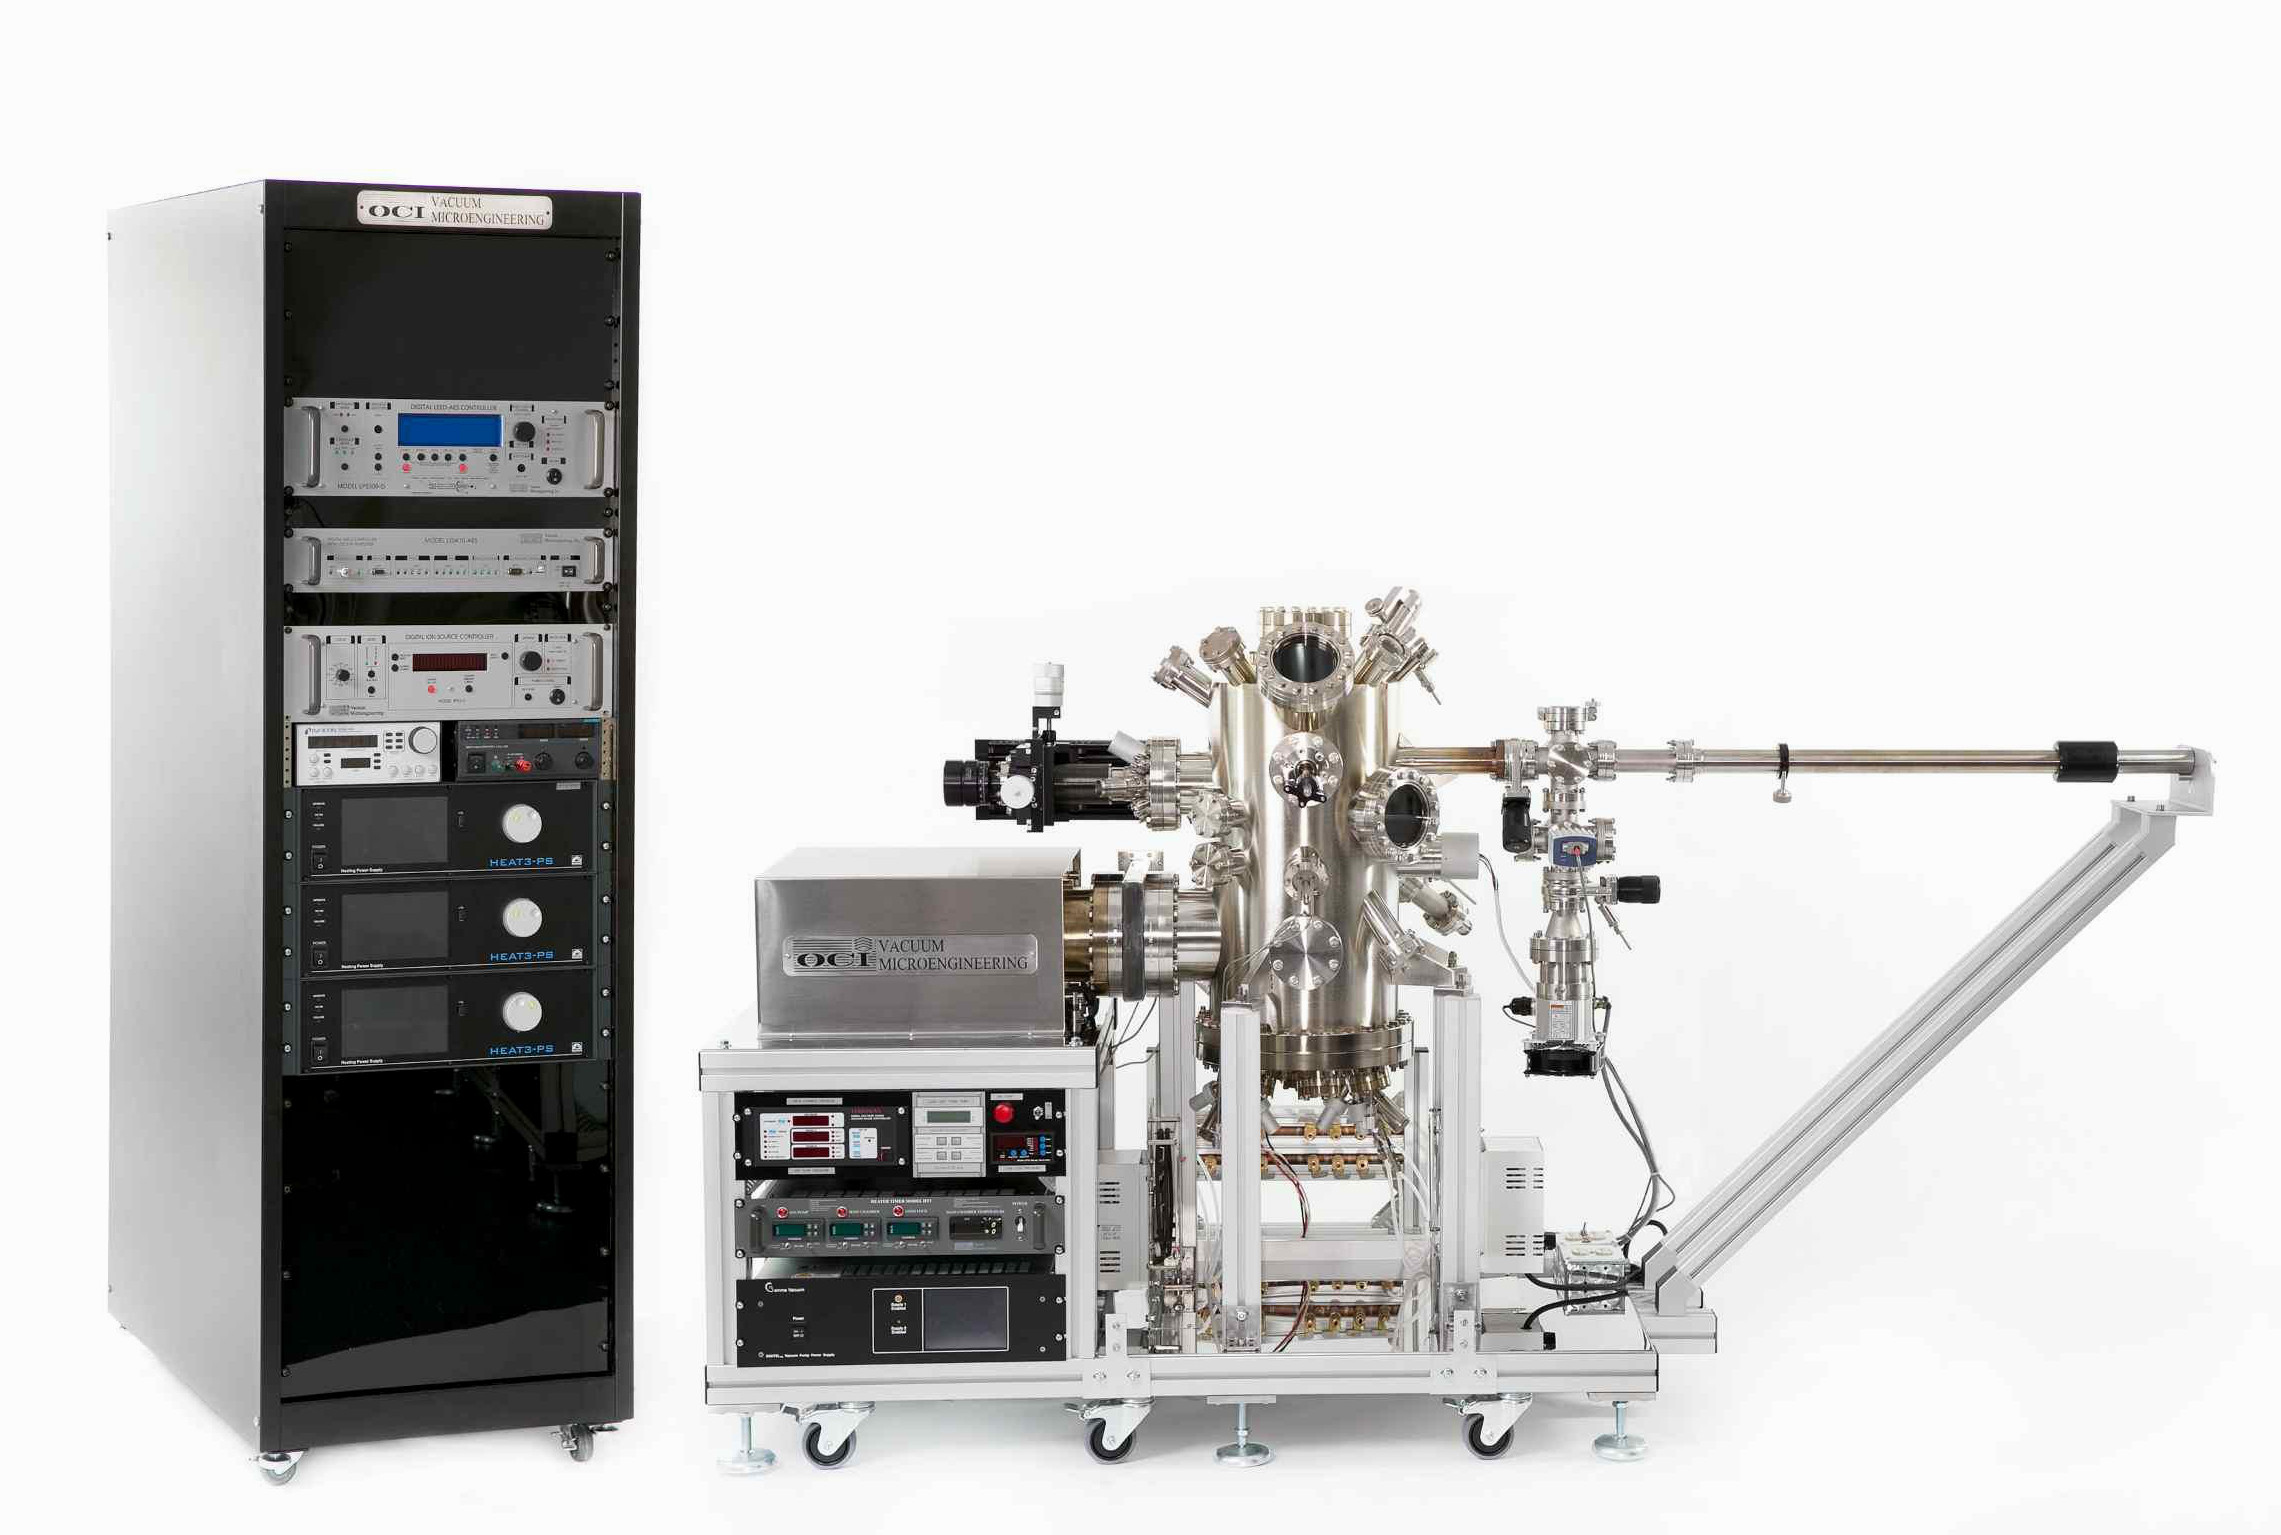 UHV System: Integrated Molecular Beam Epitaxy (MBE) System IMBE300-B